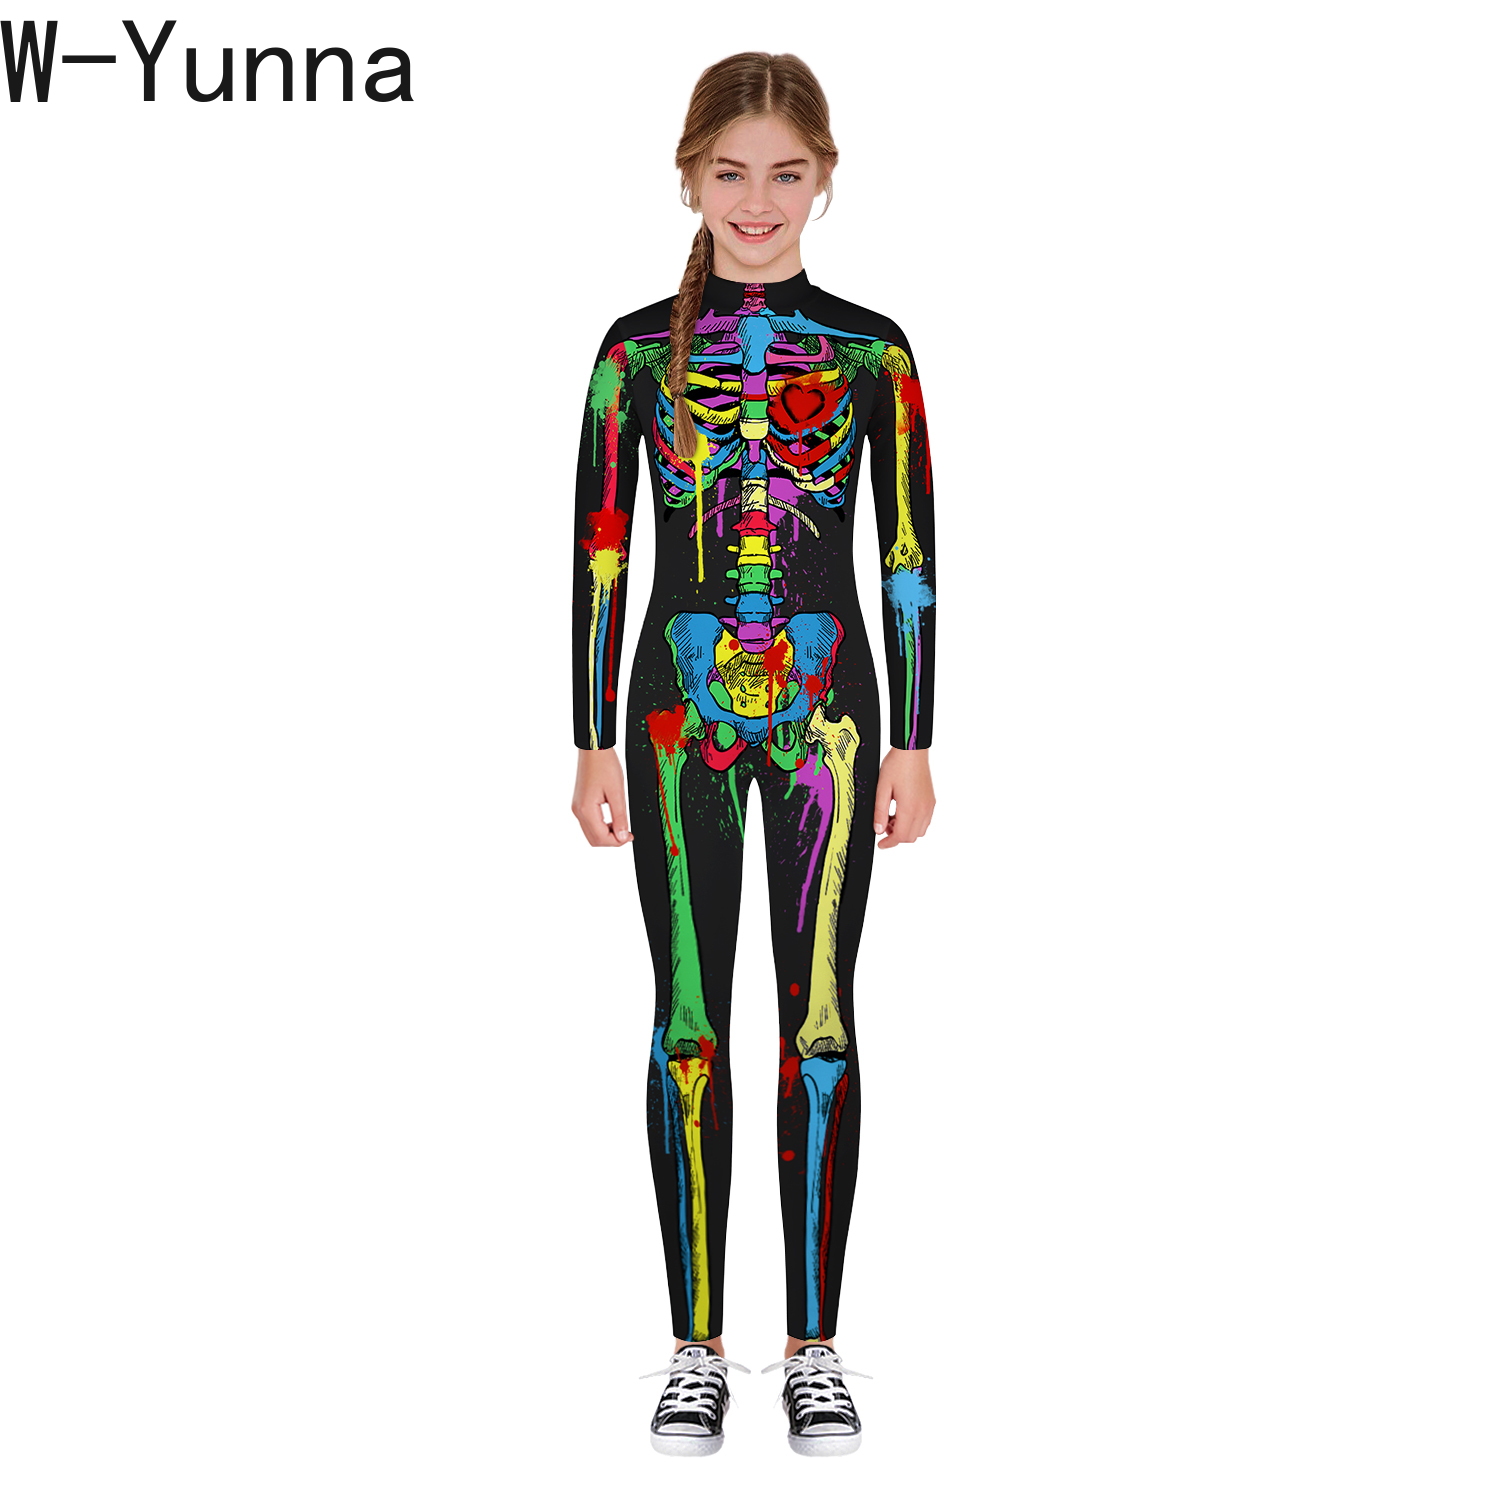 Image 5 - W Yunna 2019 Autumn Clothes Fashion Skeleton Blood Scary Costume Holloween 3d Print Full Sleeves Full Length Jumpsuits for Kids